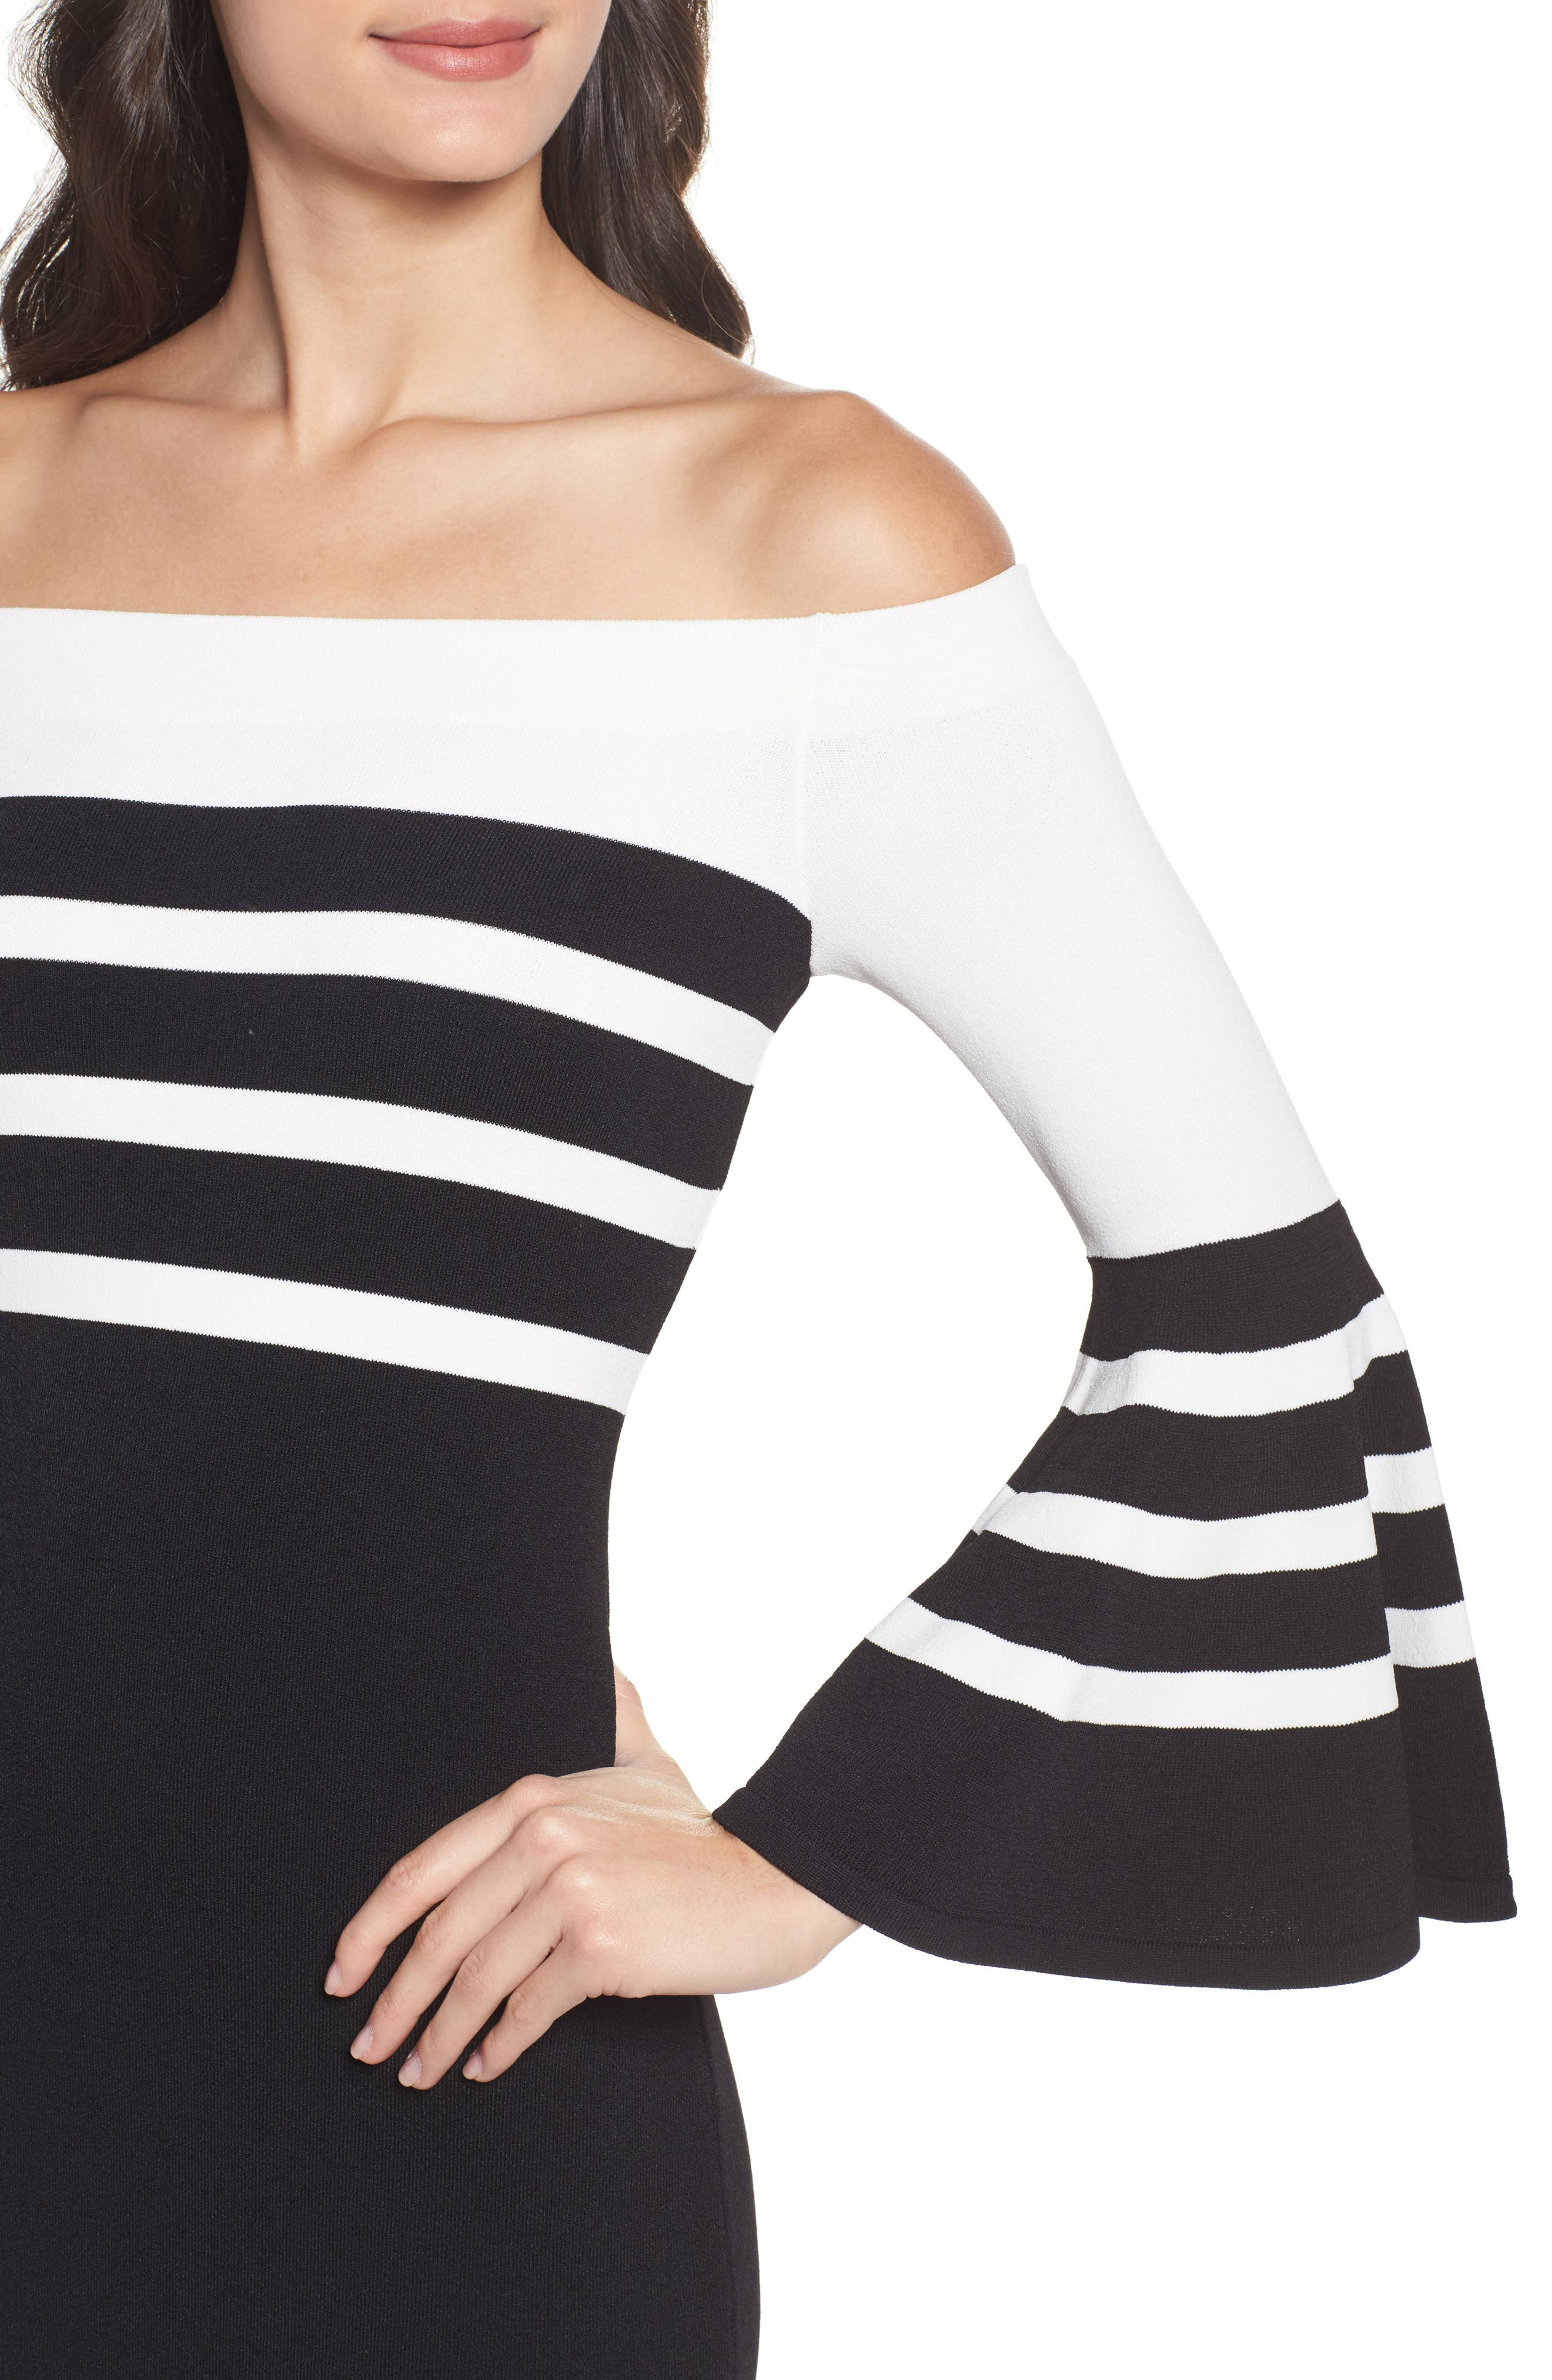 Off the Shoulder Sweater Dress,                             Alternate thumbnail 4, color,                             Black/ White Stripe